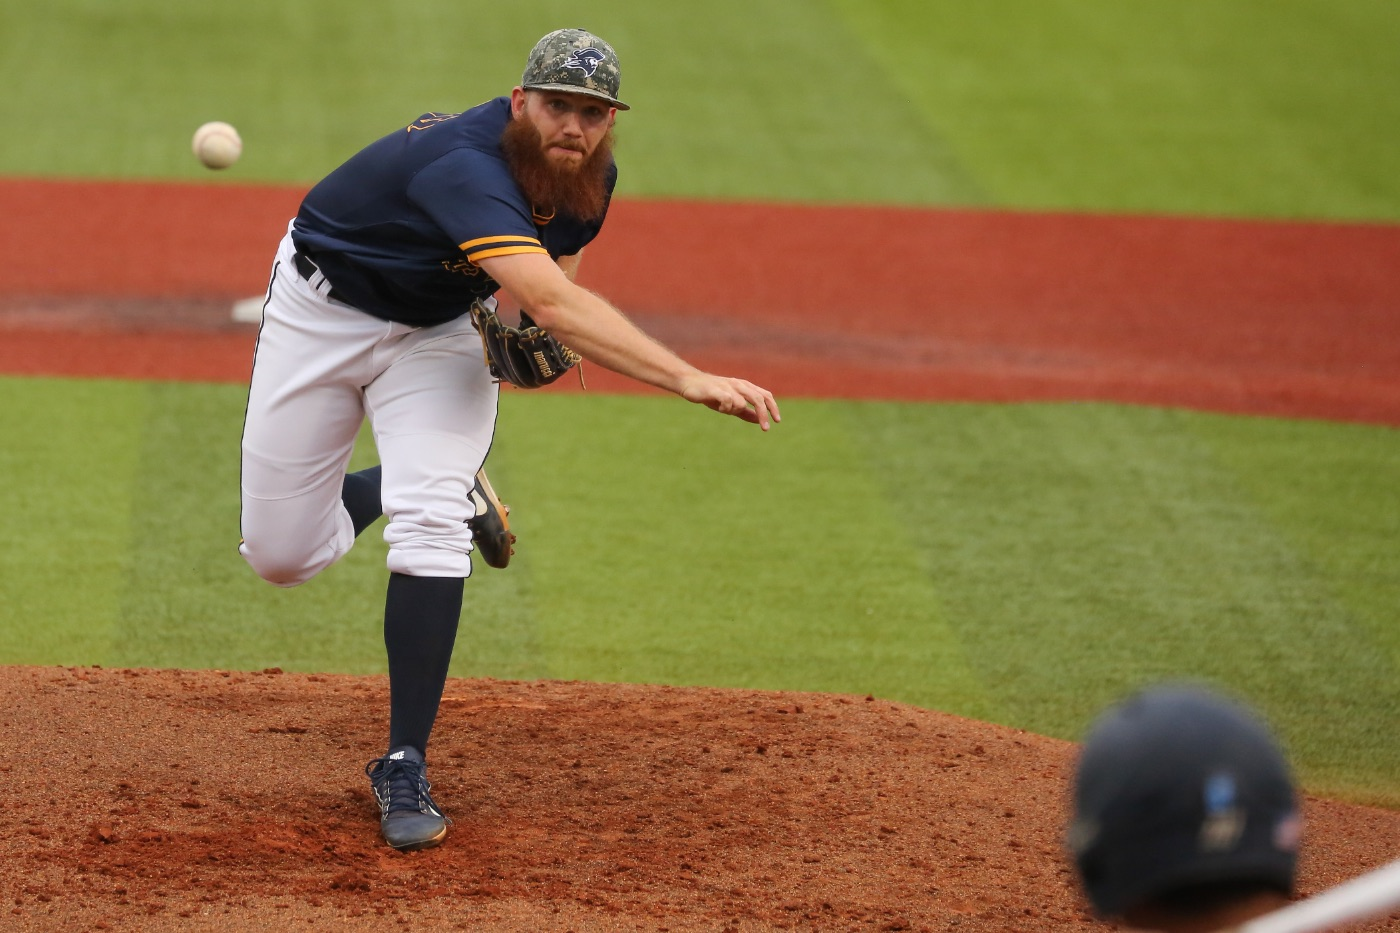 ETSU evens series with 4-2 win over Wofford